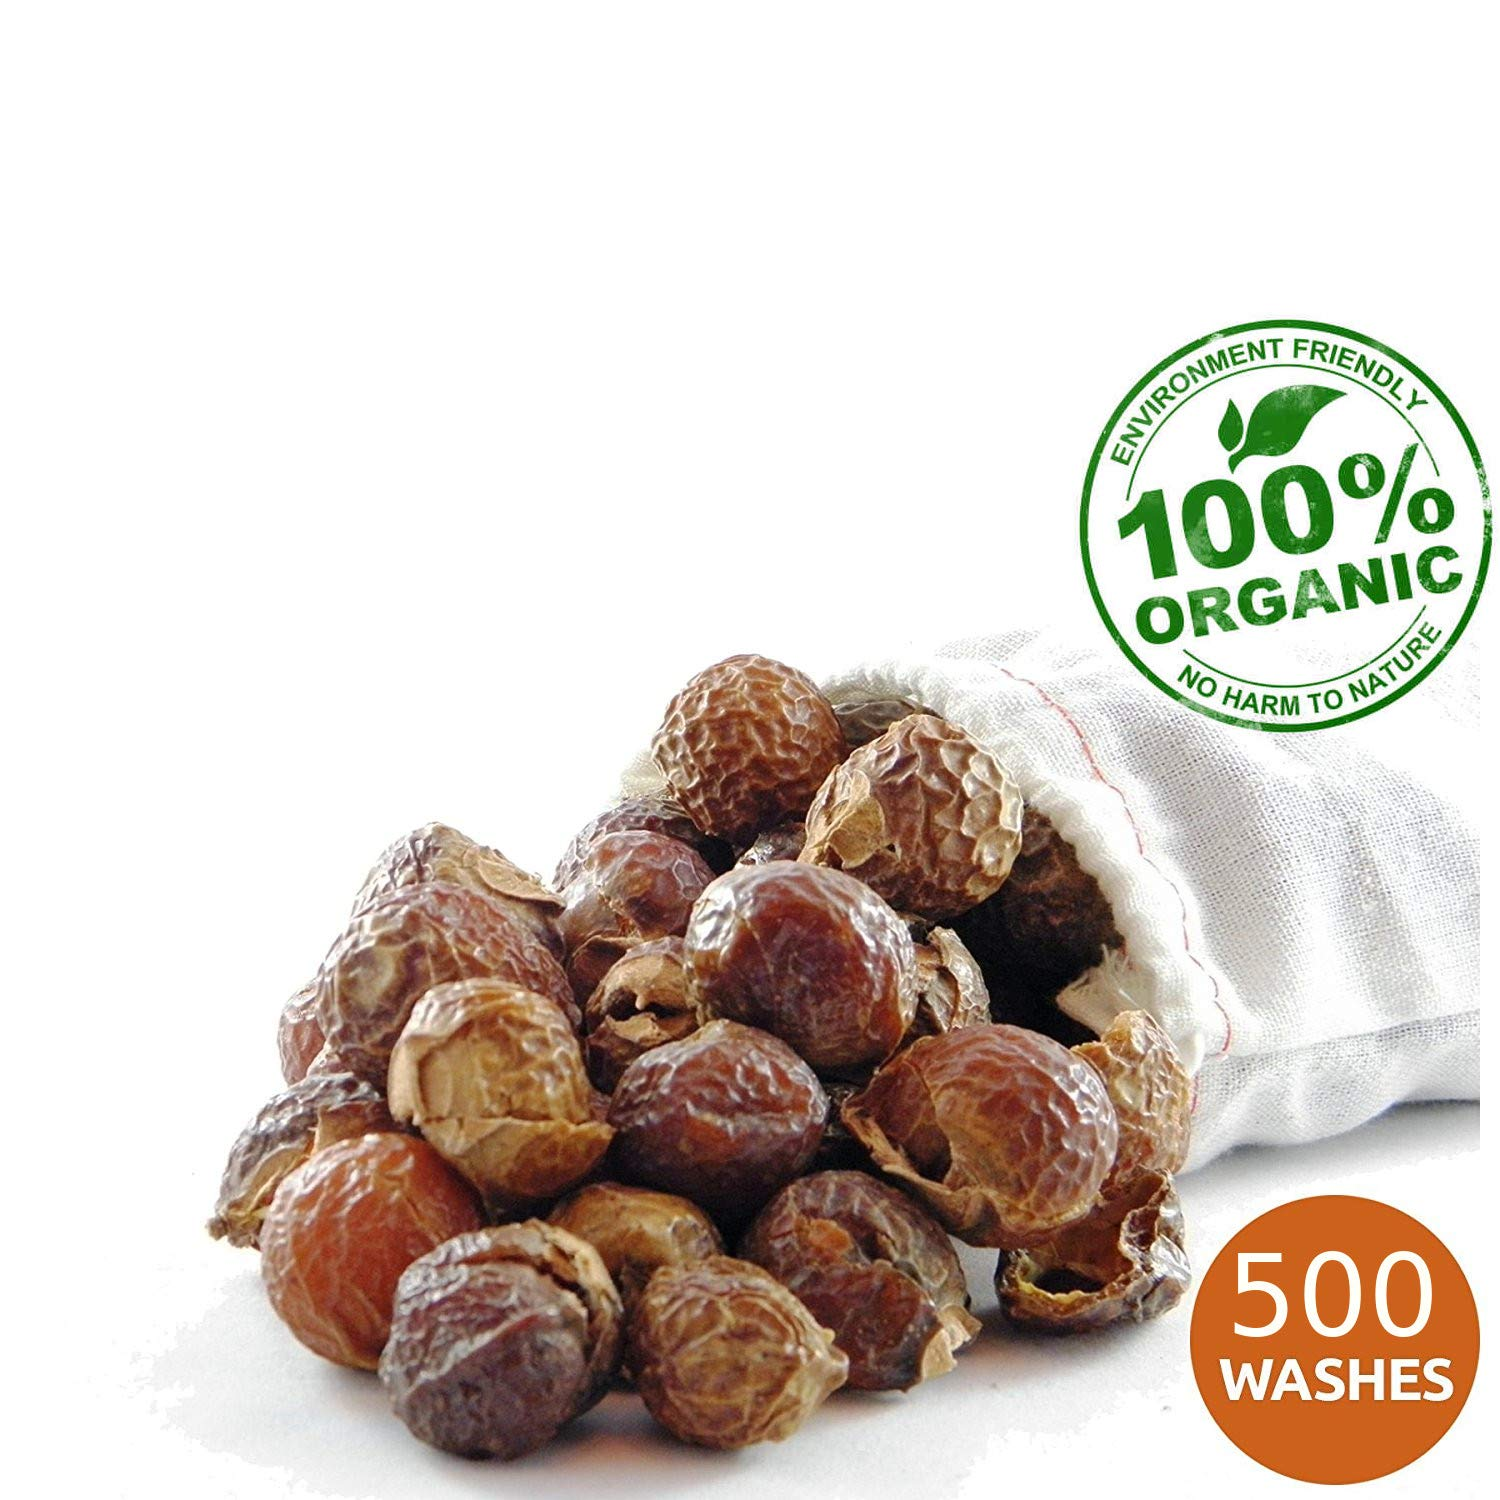 NaturalThings Organic All Natural Laundry and Dishwashing Detergent Soap Nuts/Berries. Fair Trade, Sustainable & Green Laundry (500 Loads).Premium Grade + Wash Bag (2.2 Pounds)